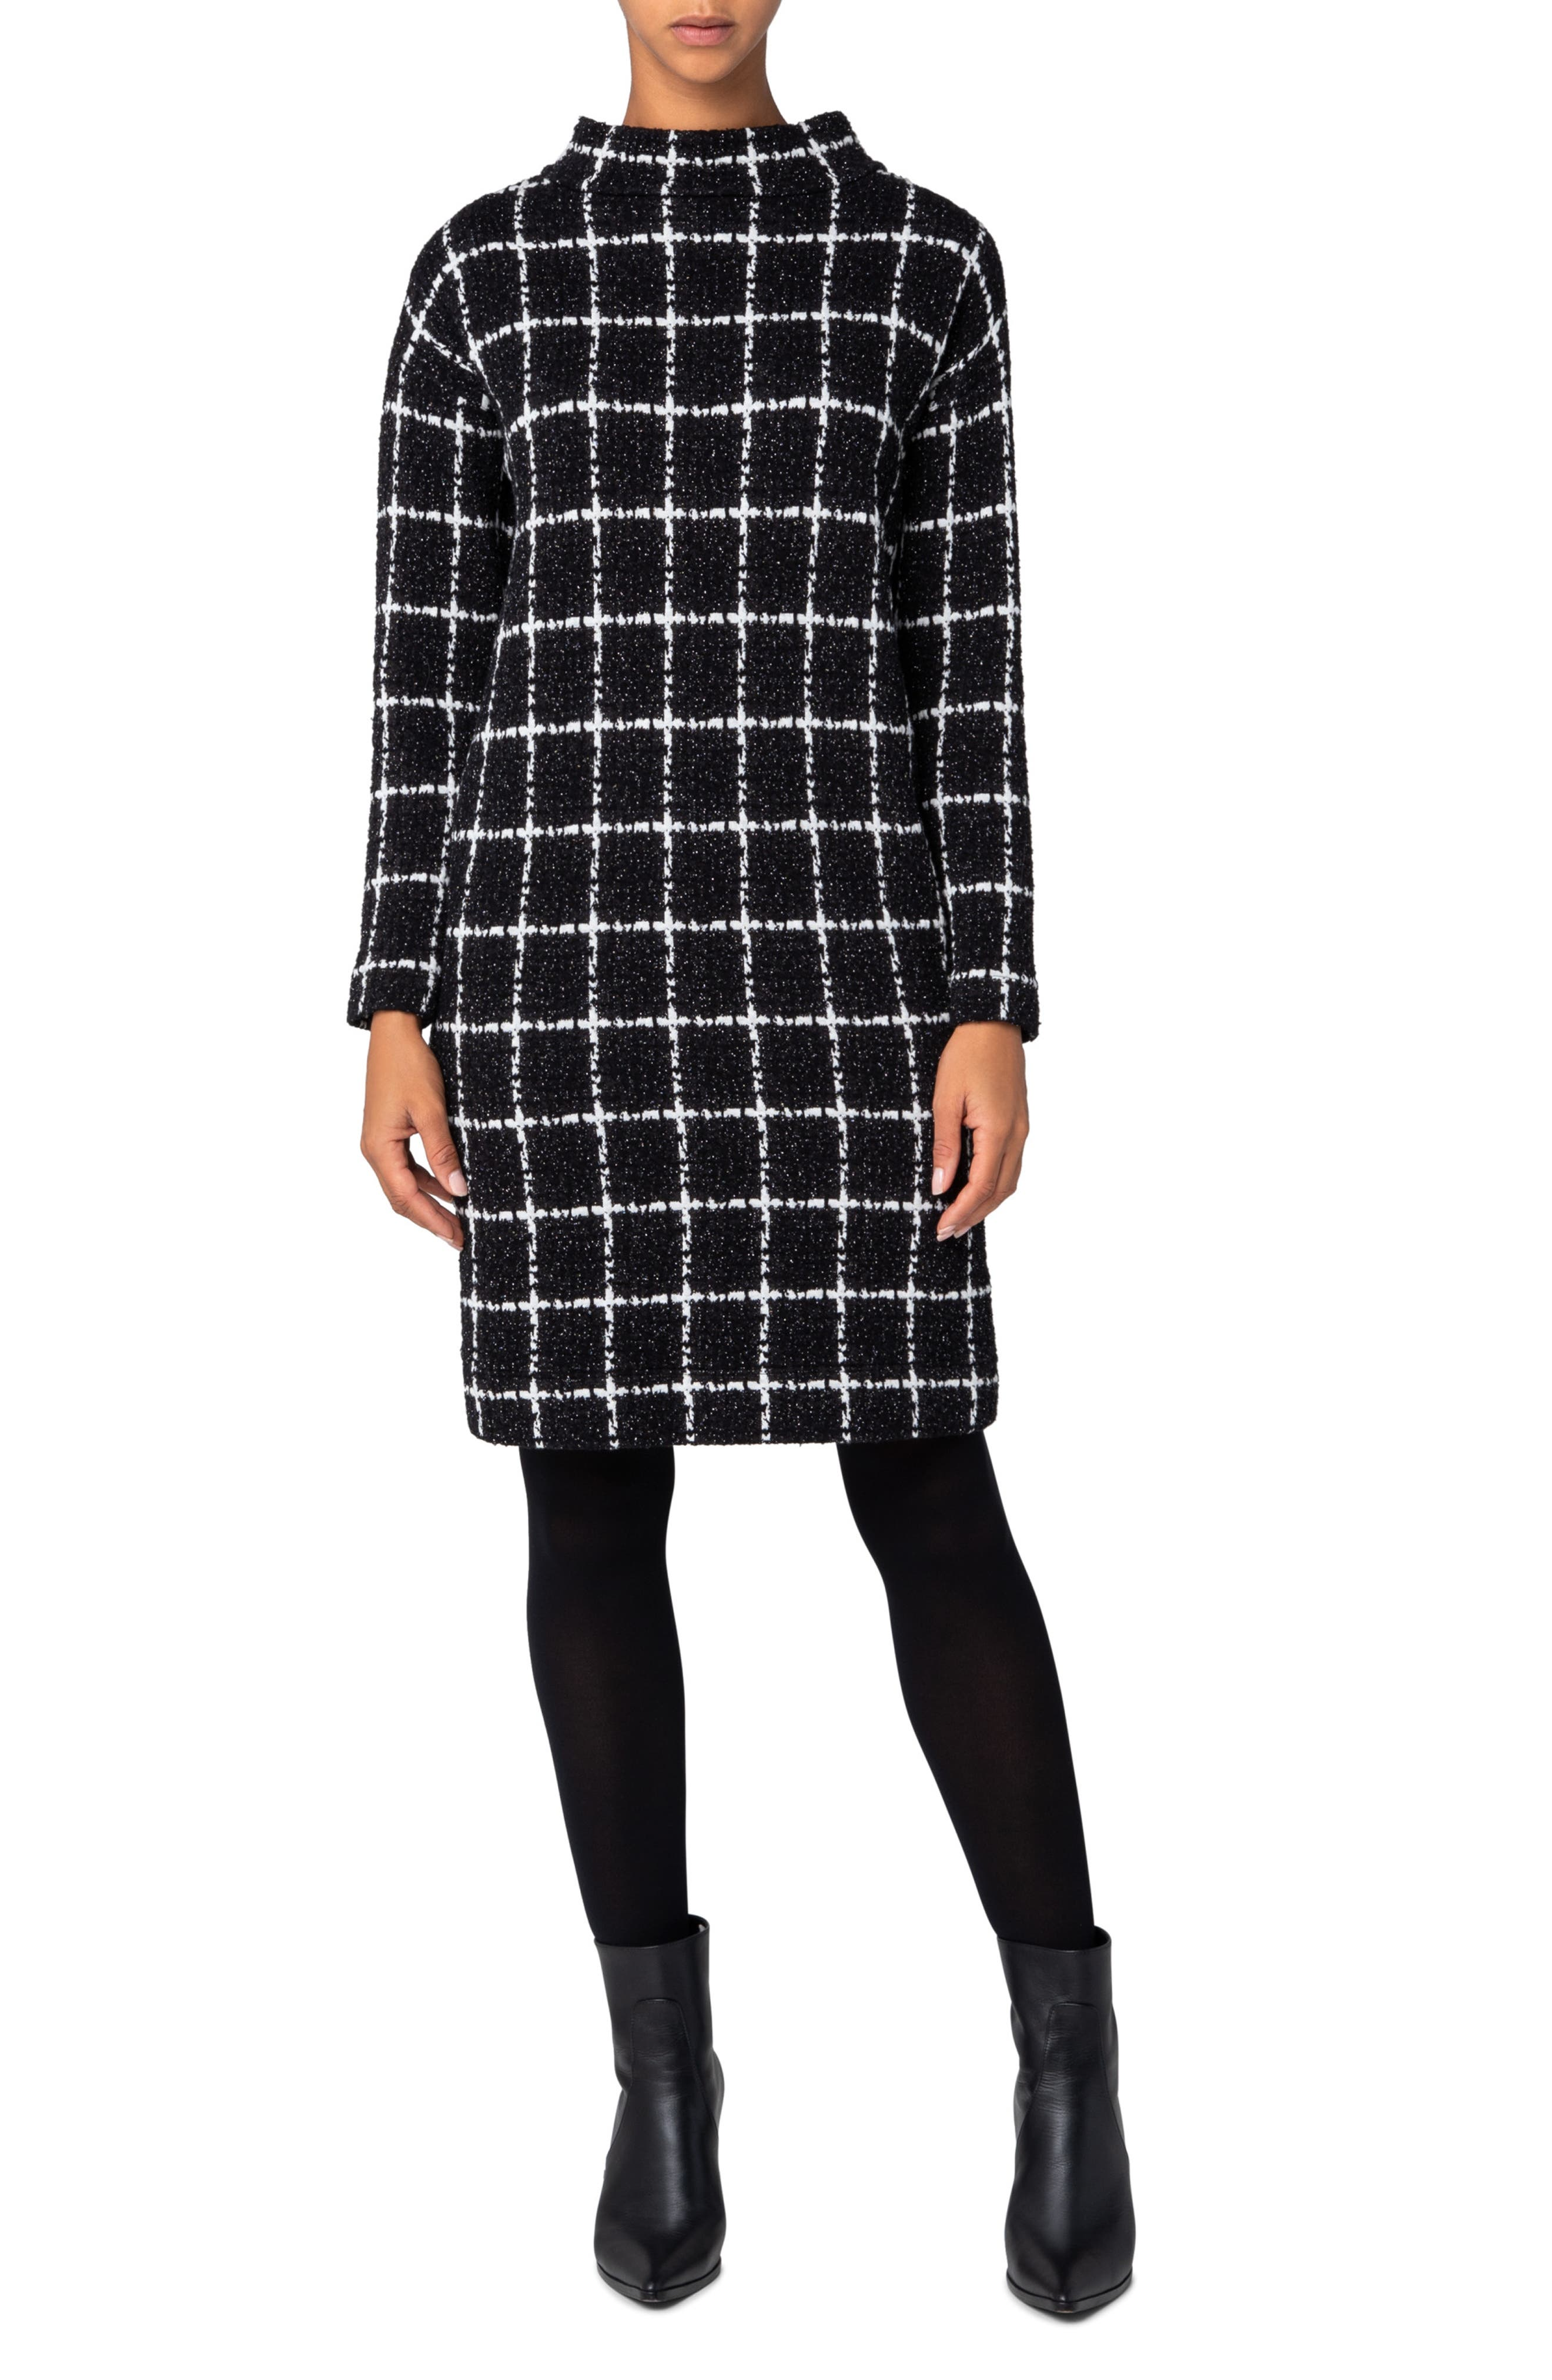 Shop Queen's Gambit Outfits – 60s Clothes Womens Akris Punto Grid Check Long Sleeve Jersey Dress $1,290.00 AT vintagedancer.com